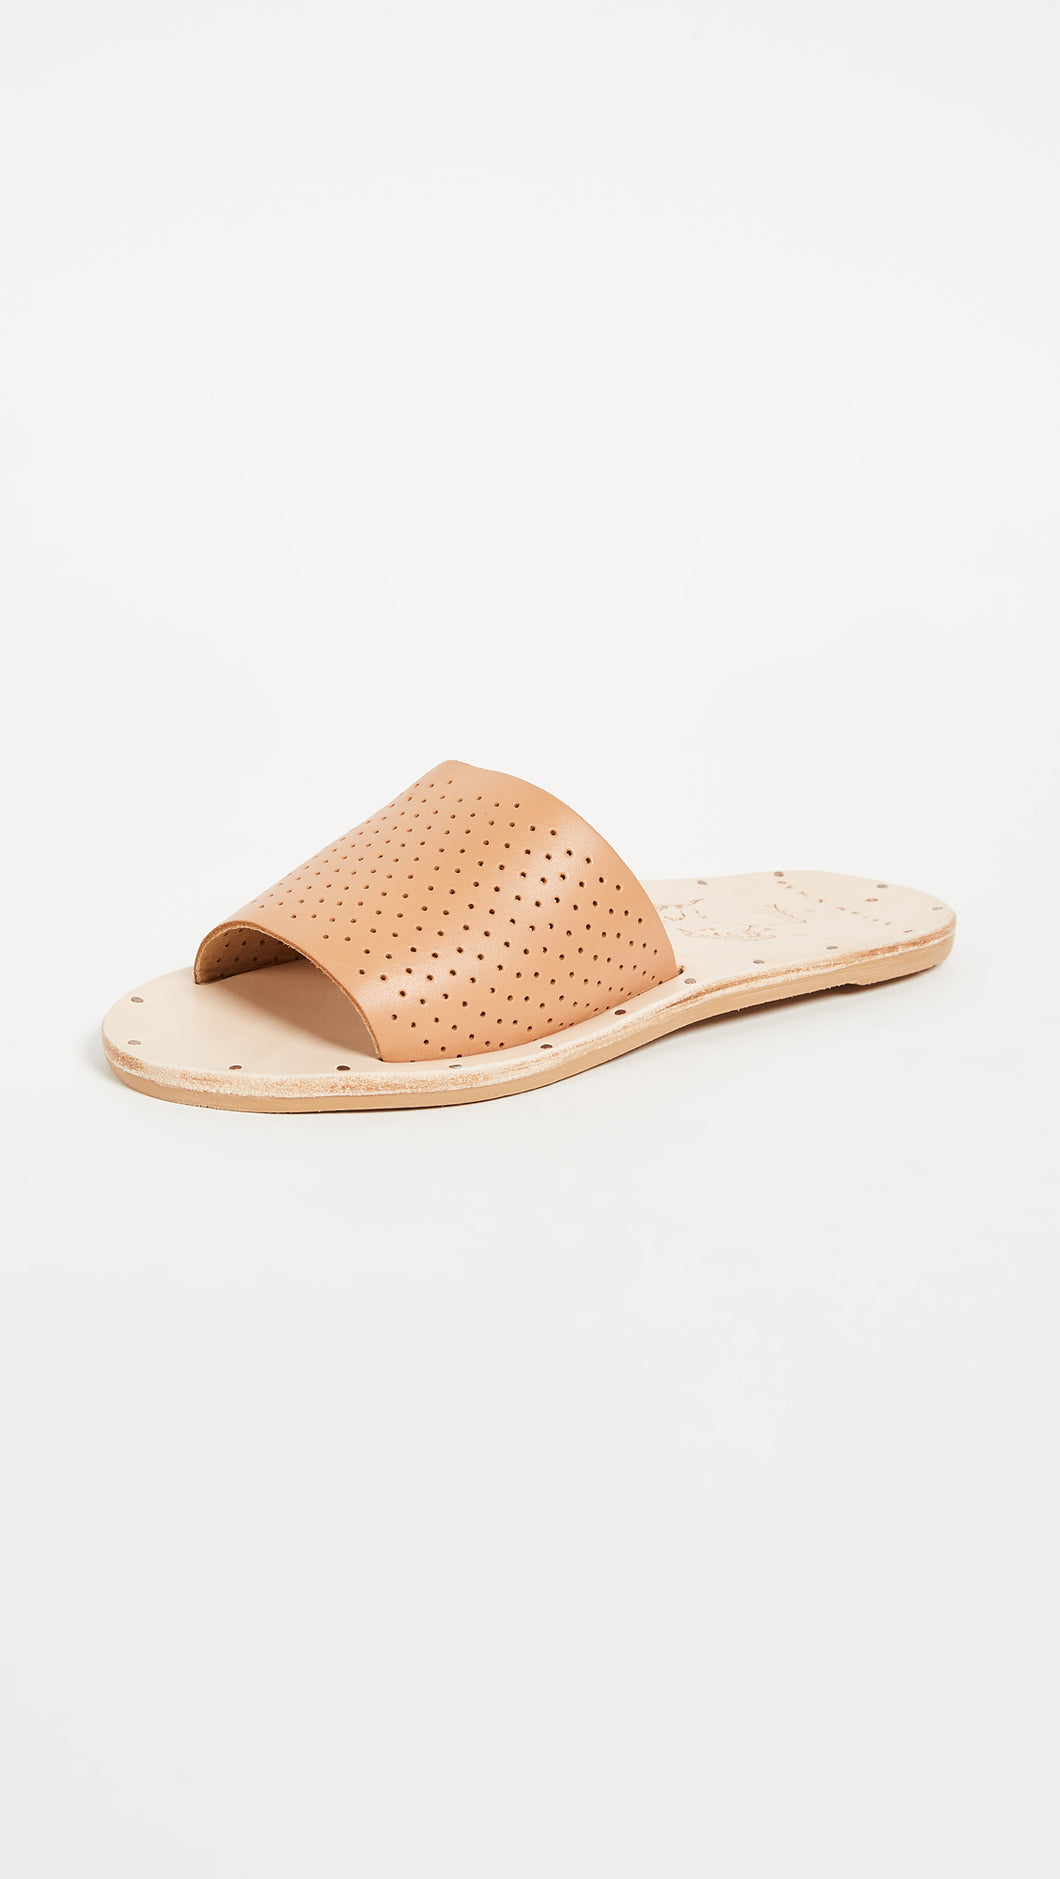 Mockingbird Sandal